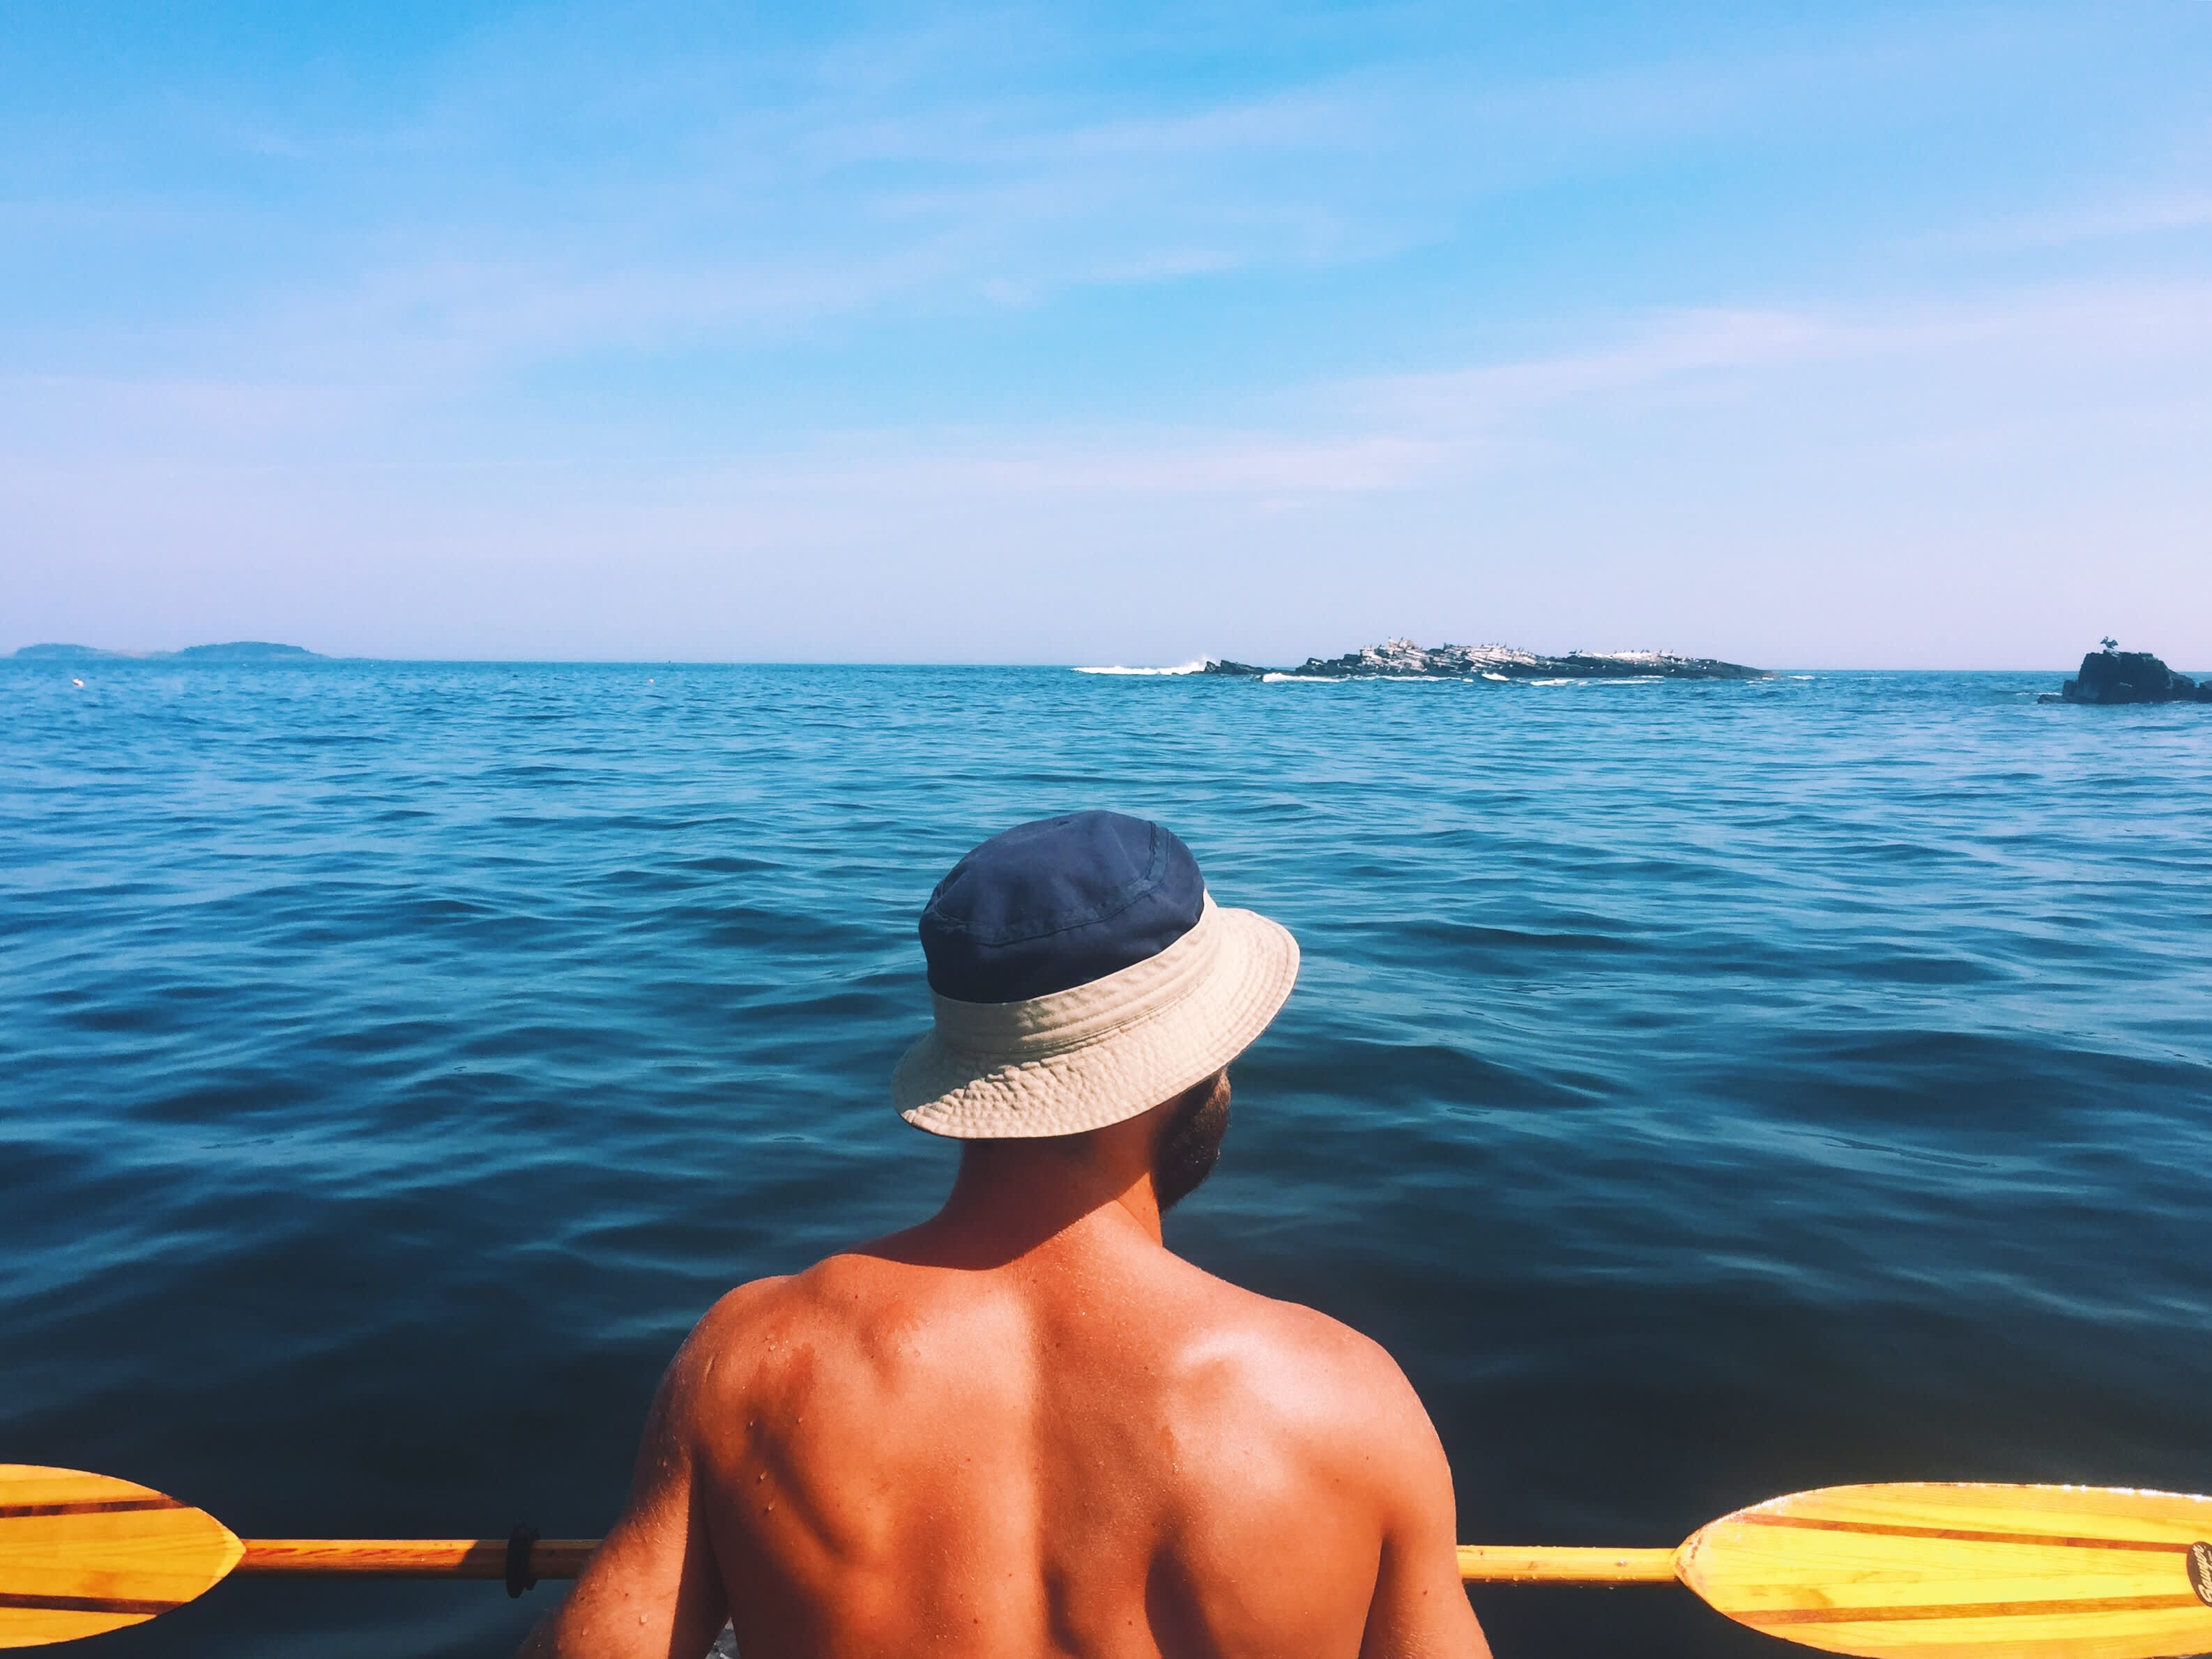 I retired at 34 with $3 million—here are 5 downsides of early retirement that no one tells you